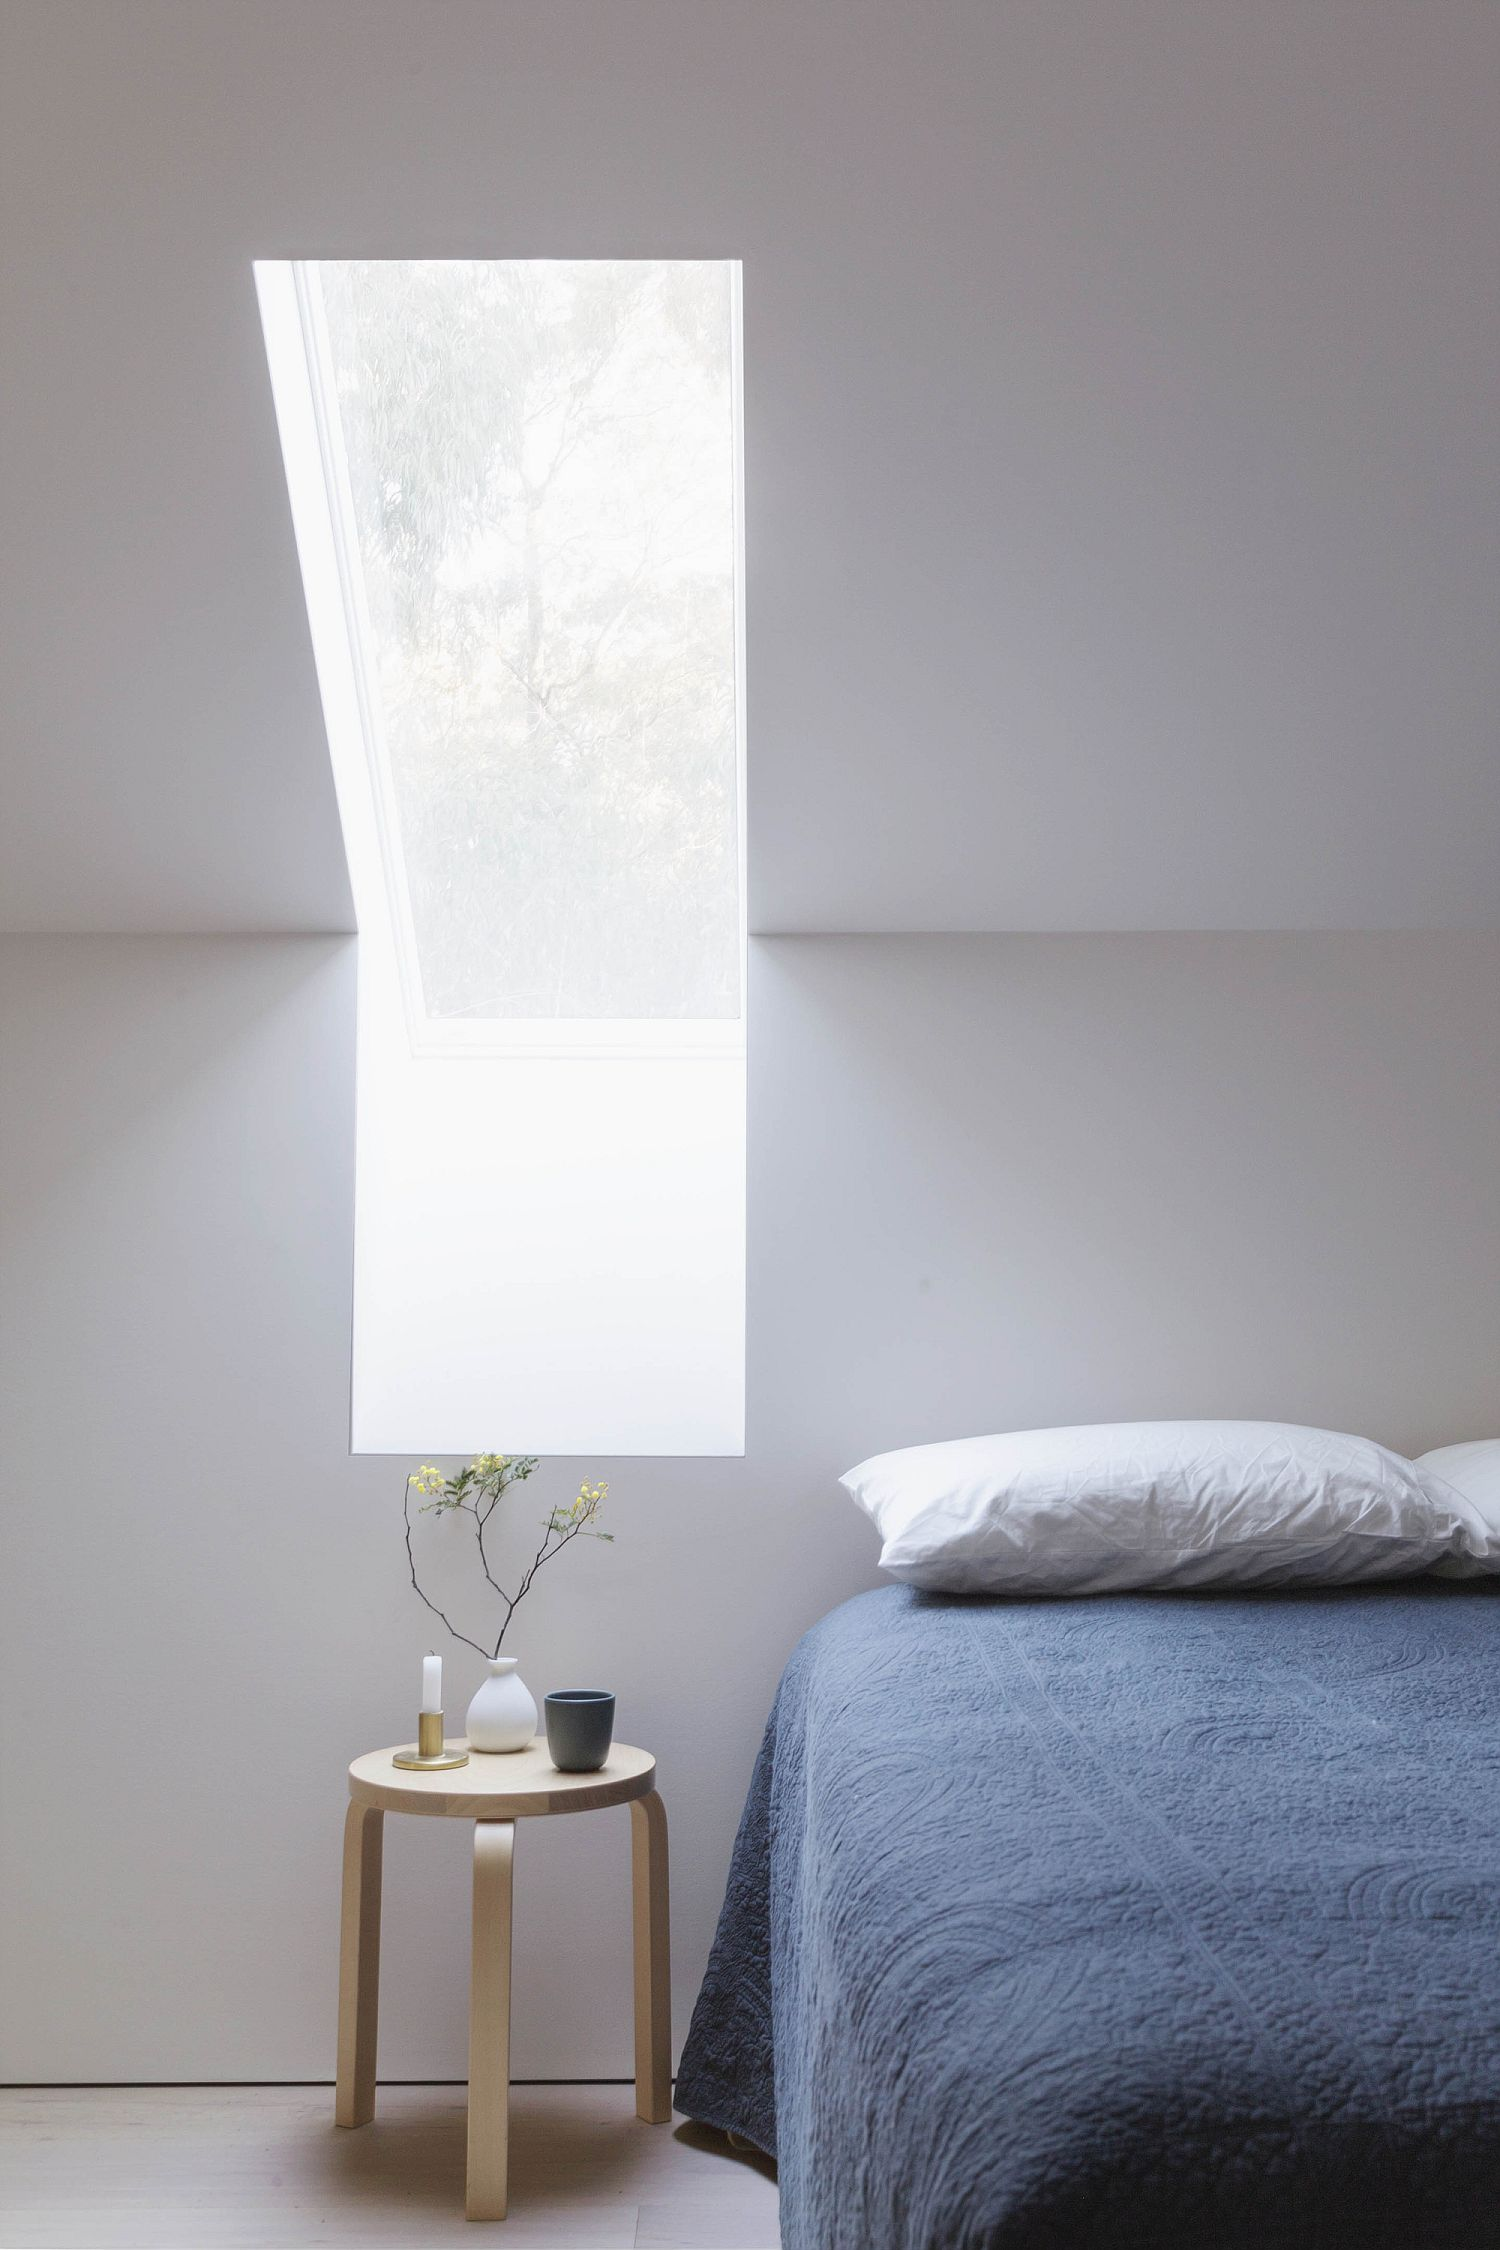 Clever use of windows brings natural light into the minimal bedroom